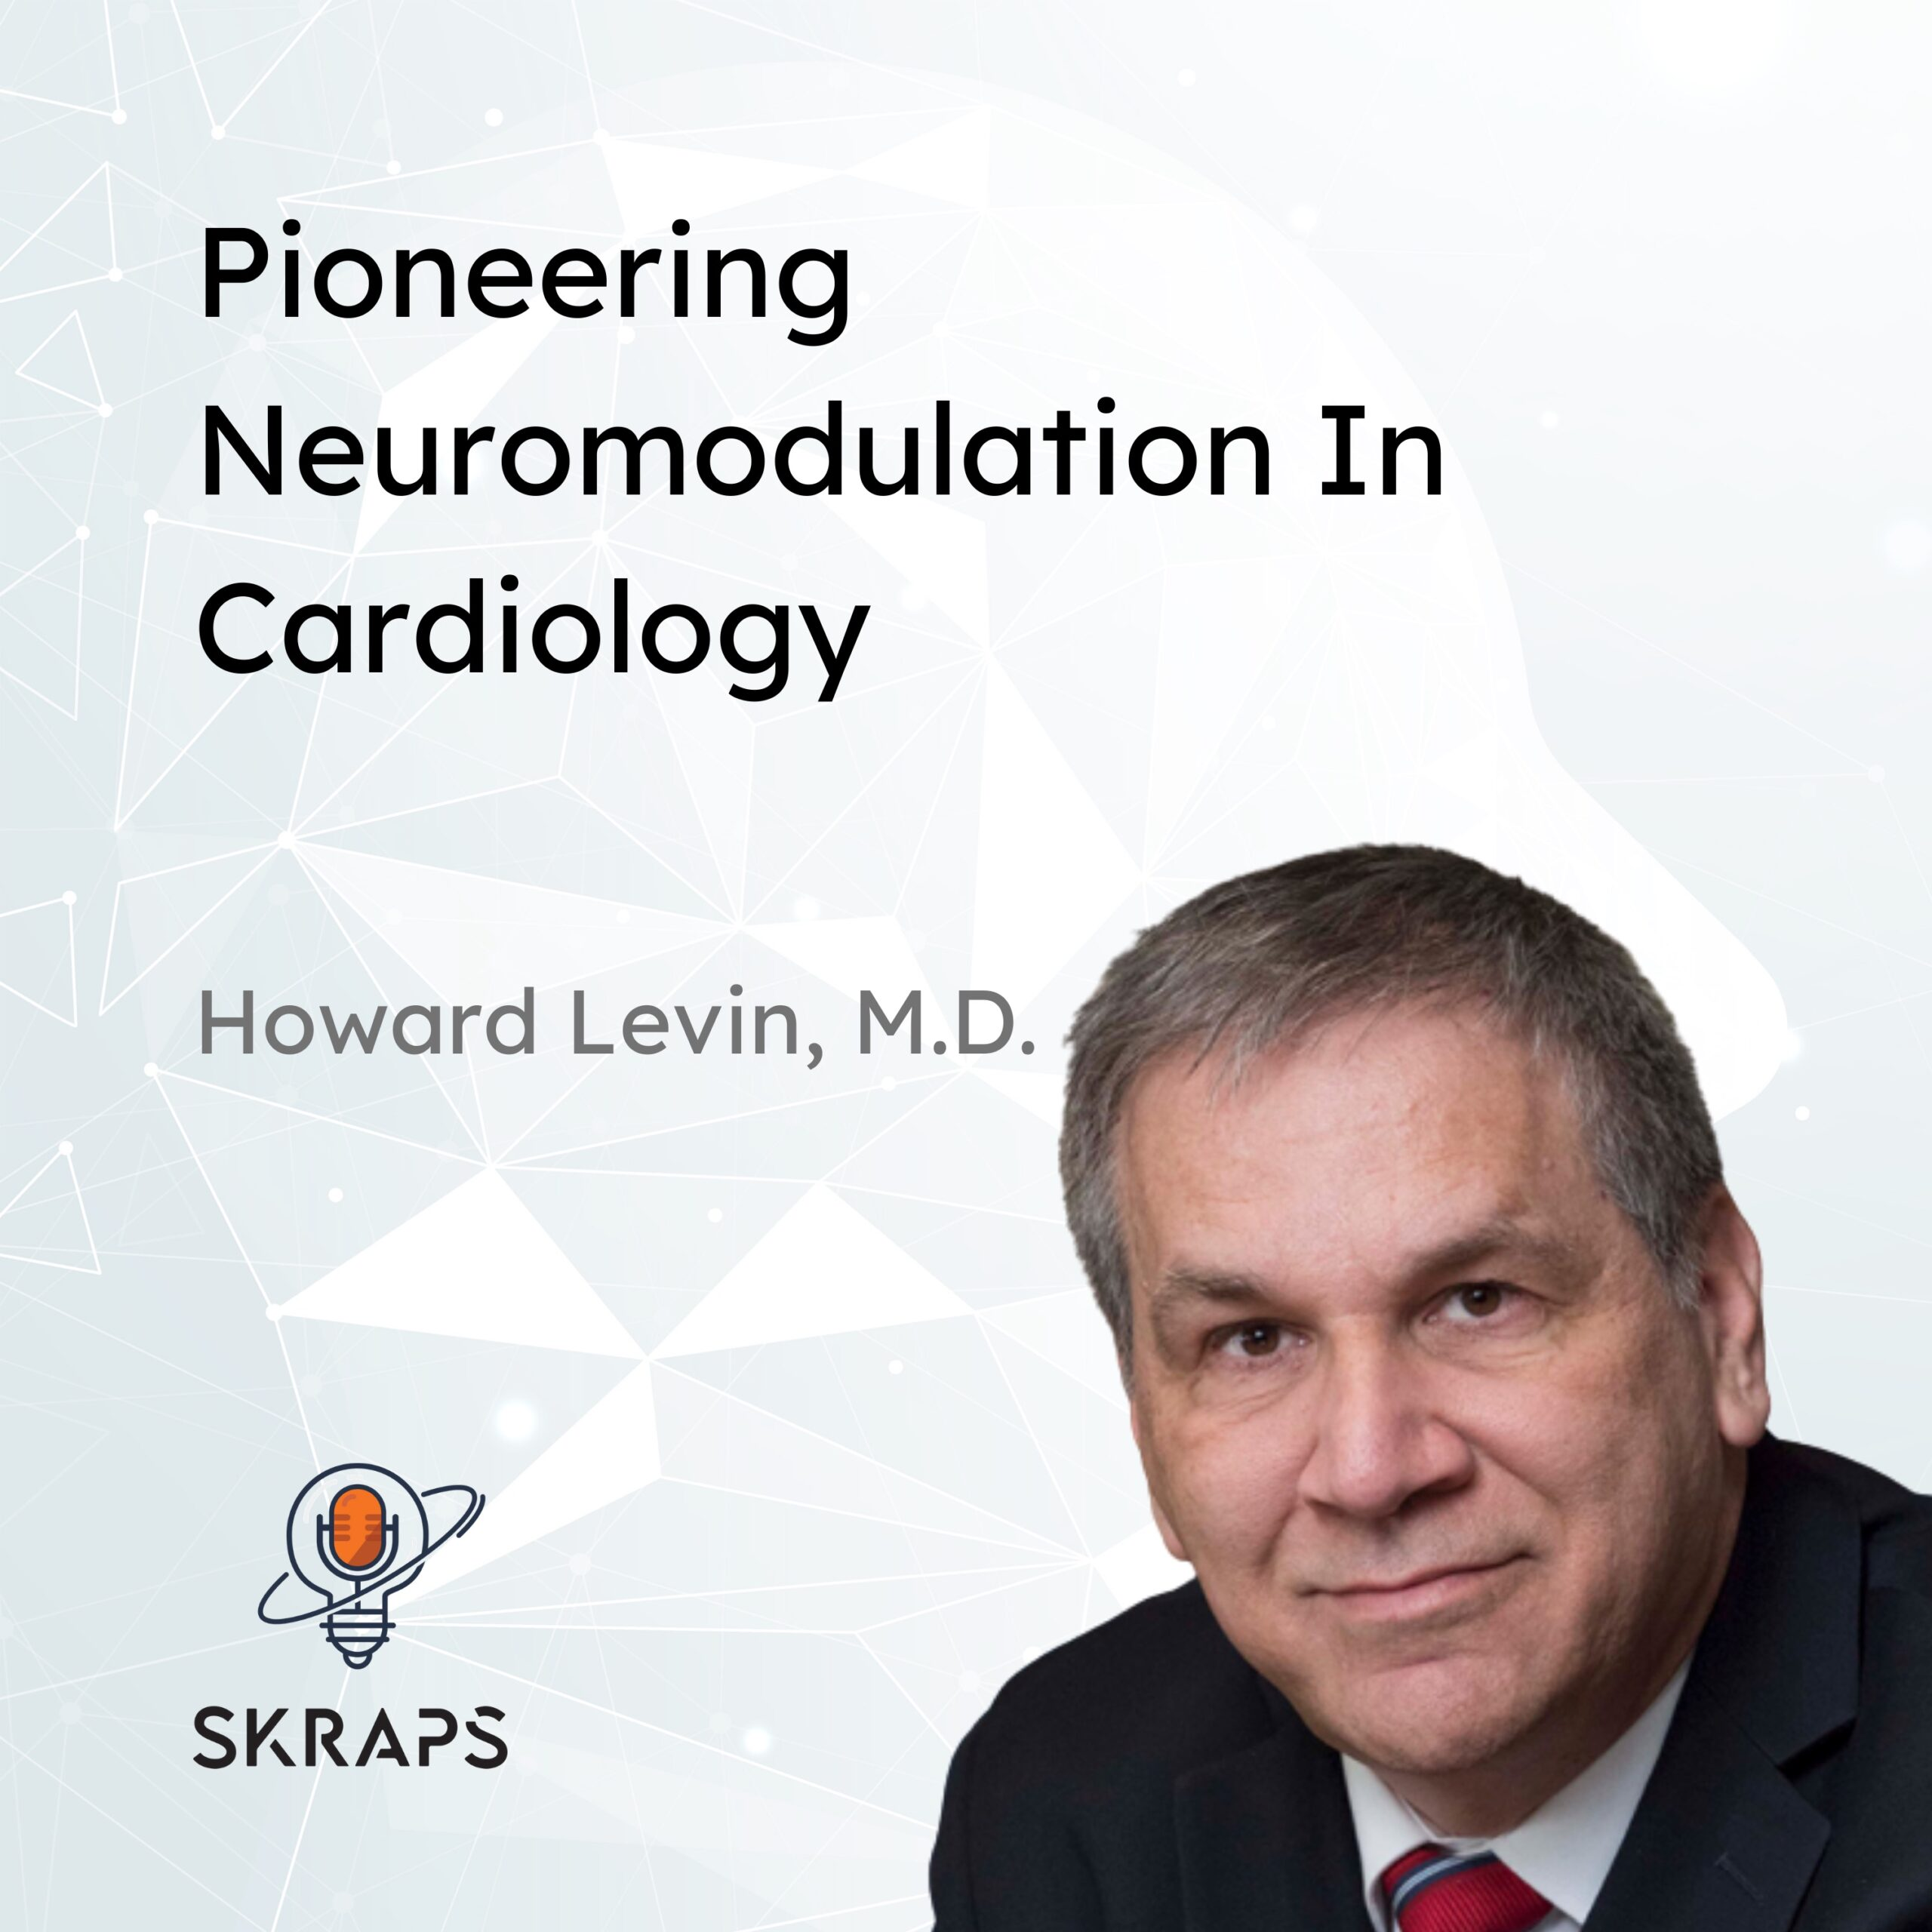 Dr. Howard Levin – Pioneering neuromodulation in cardiology